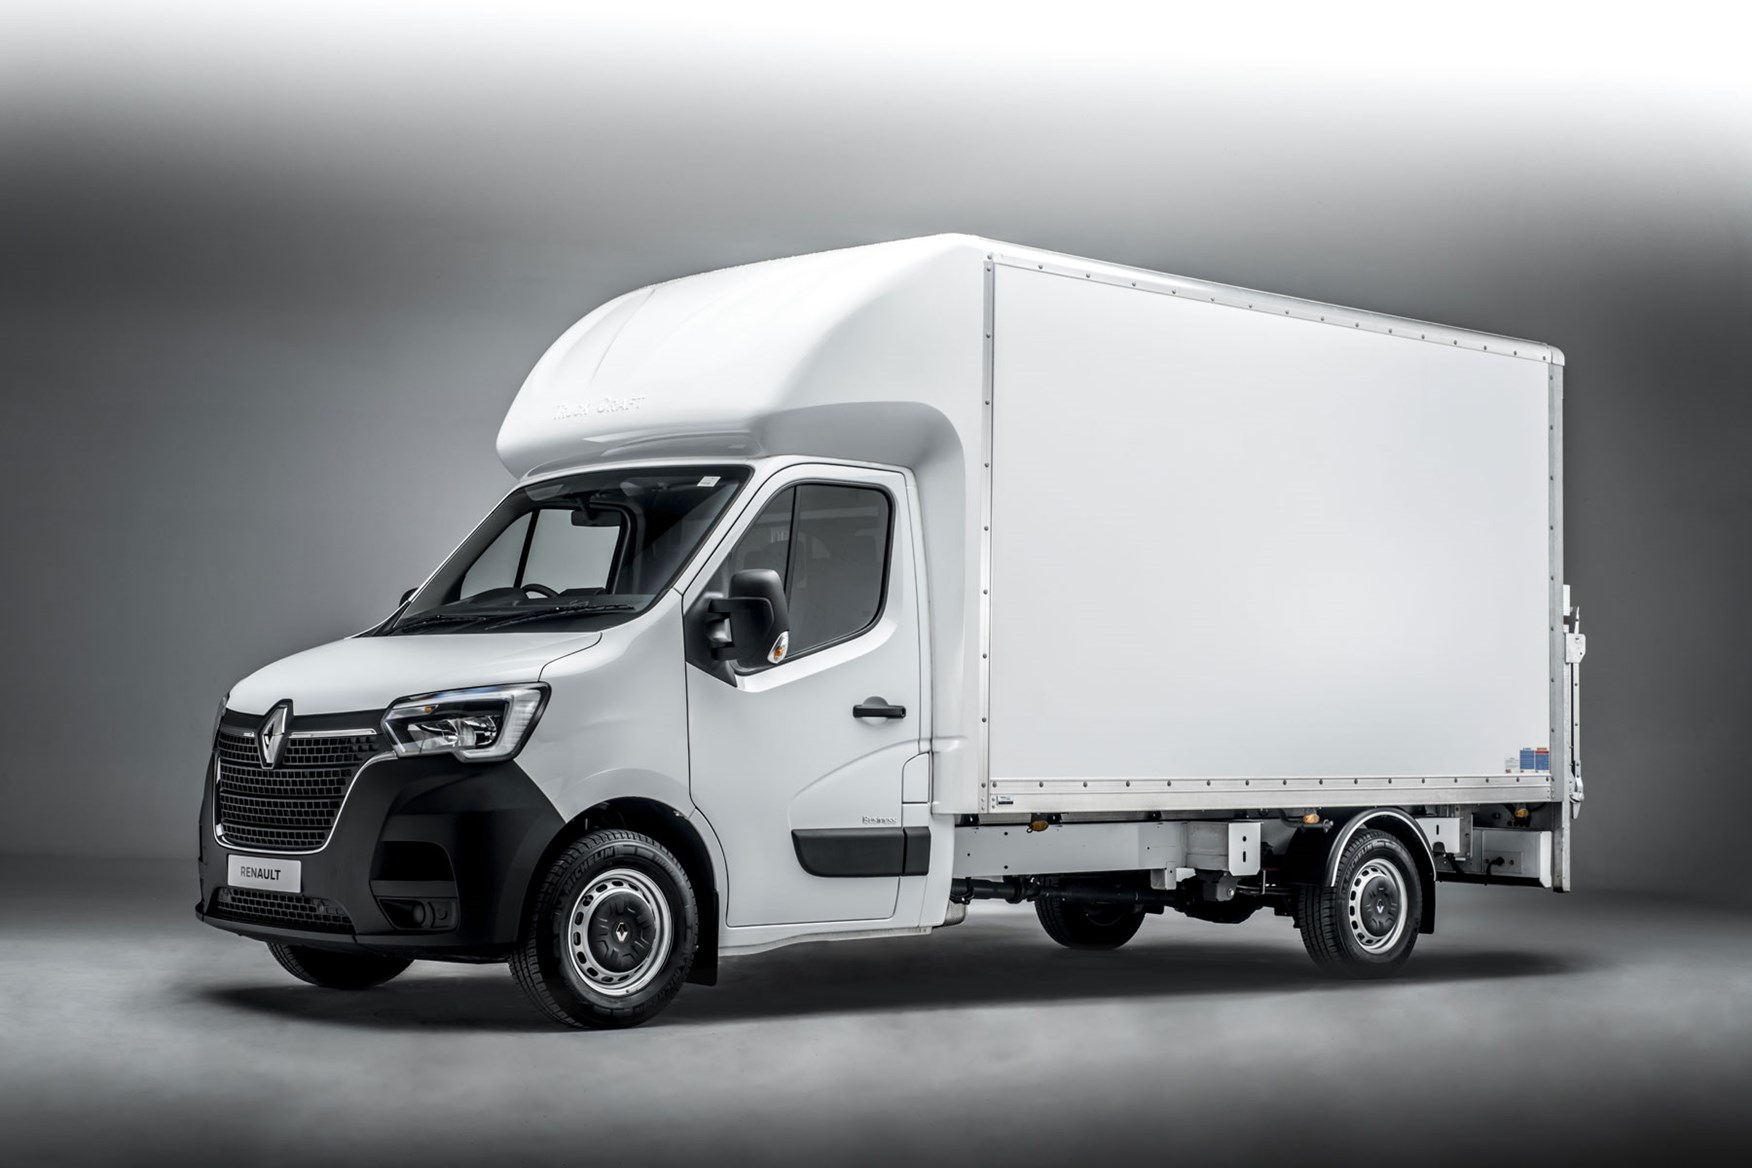 Renault Master ZE electric van review, 2020 - Luton Box van with tail-lift